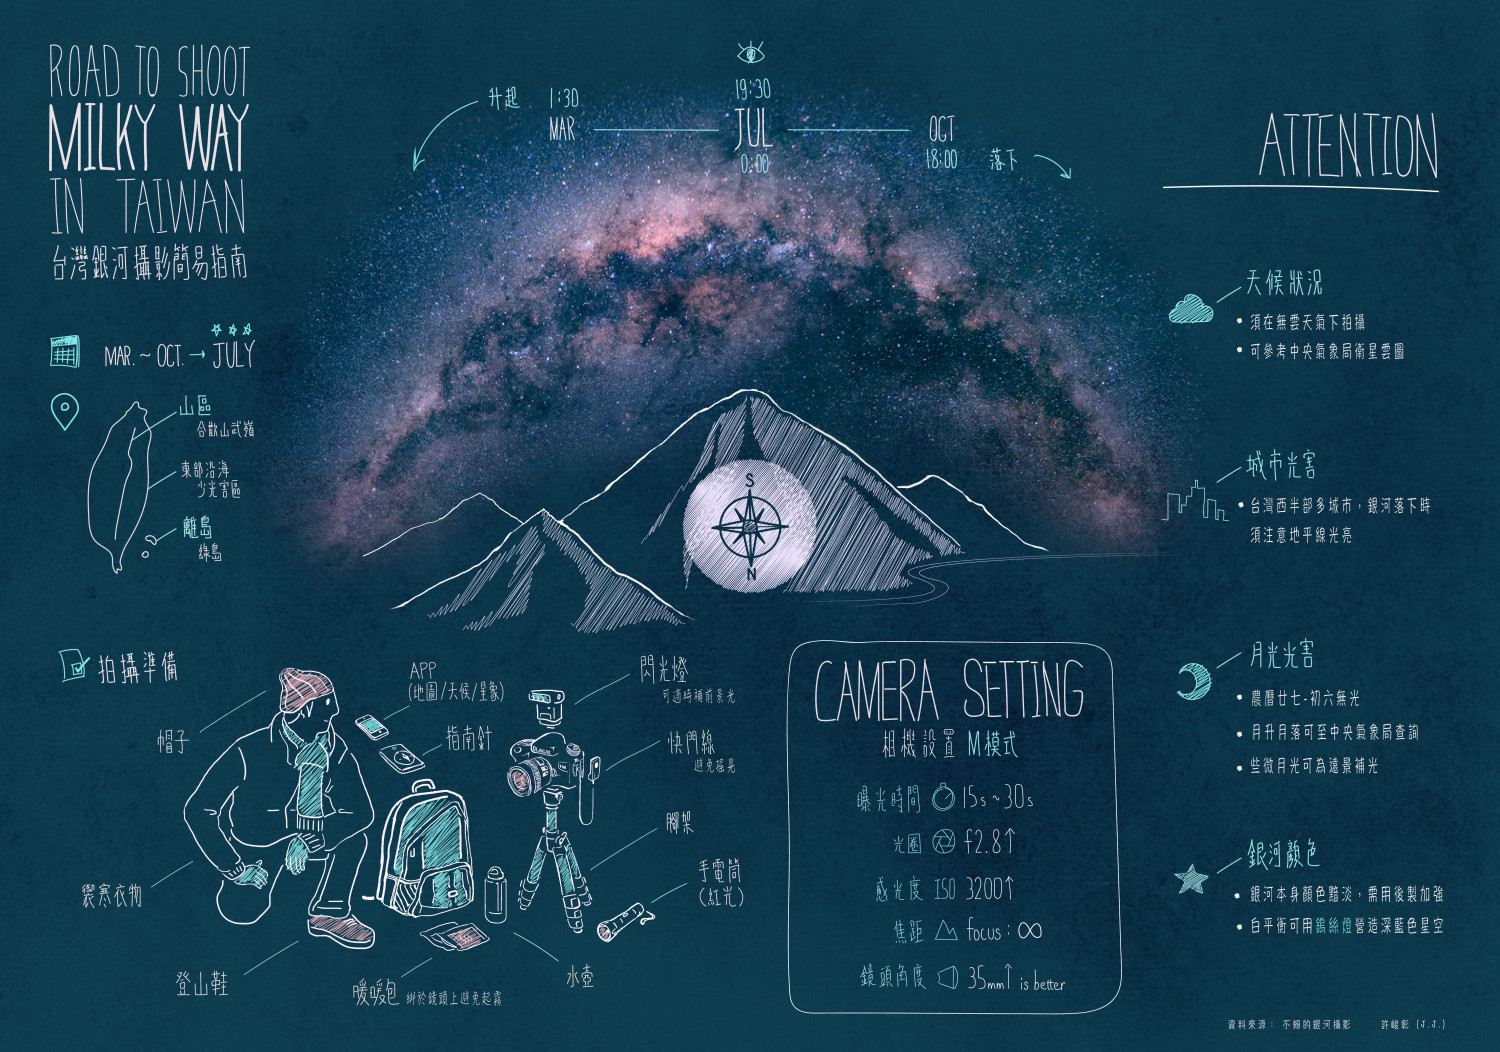 Road to Shoot Milky Way (in Taiwan) Infographic